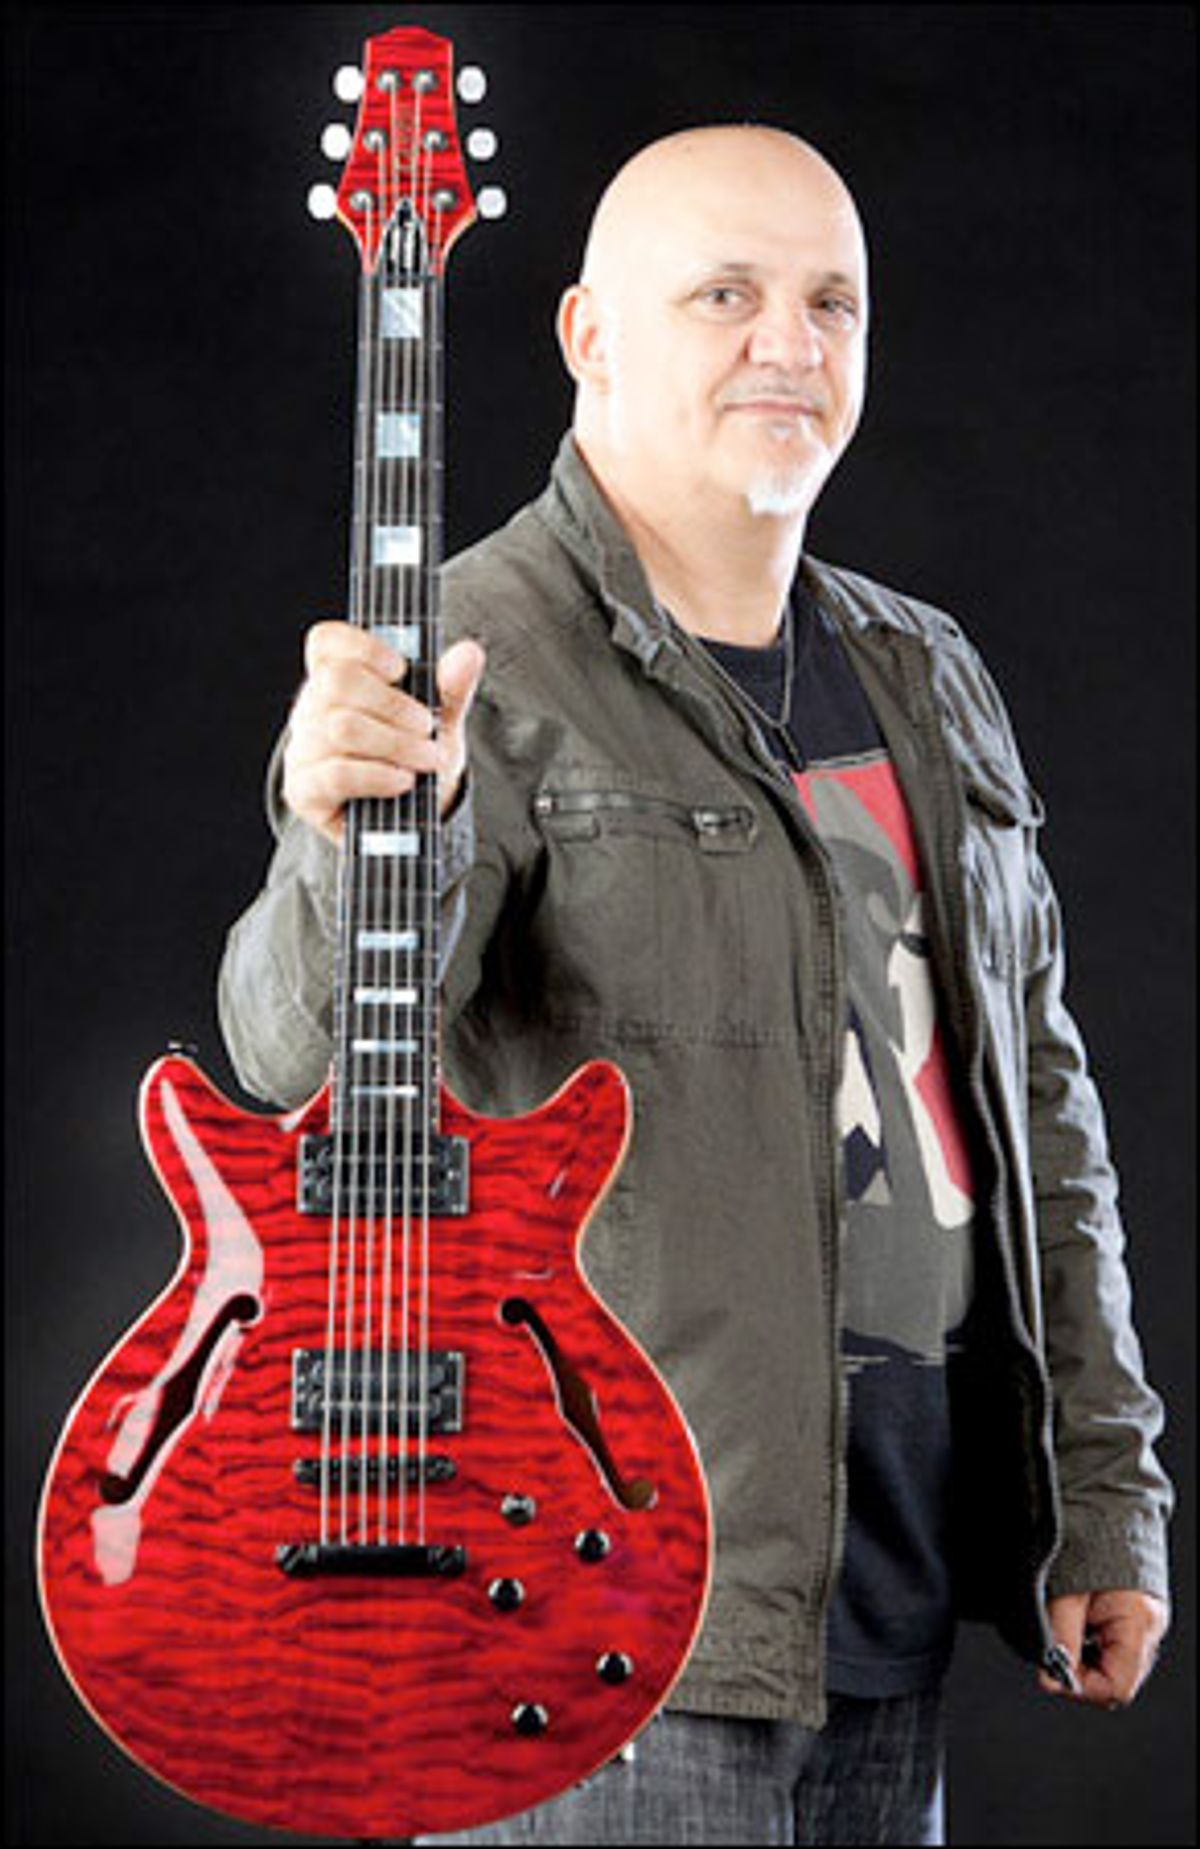 Carvin Introduces the Frank Gambale FG1 Signature Guitar